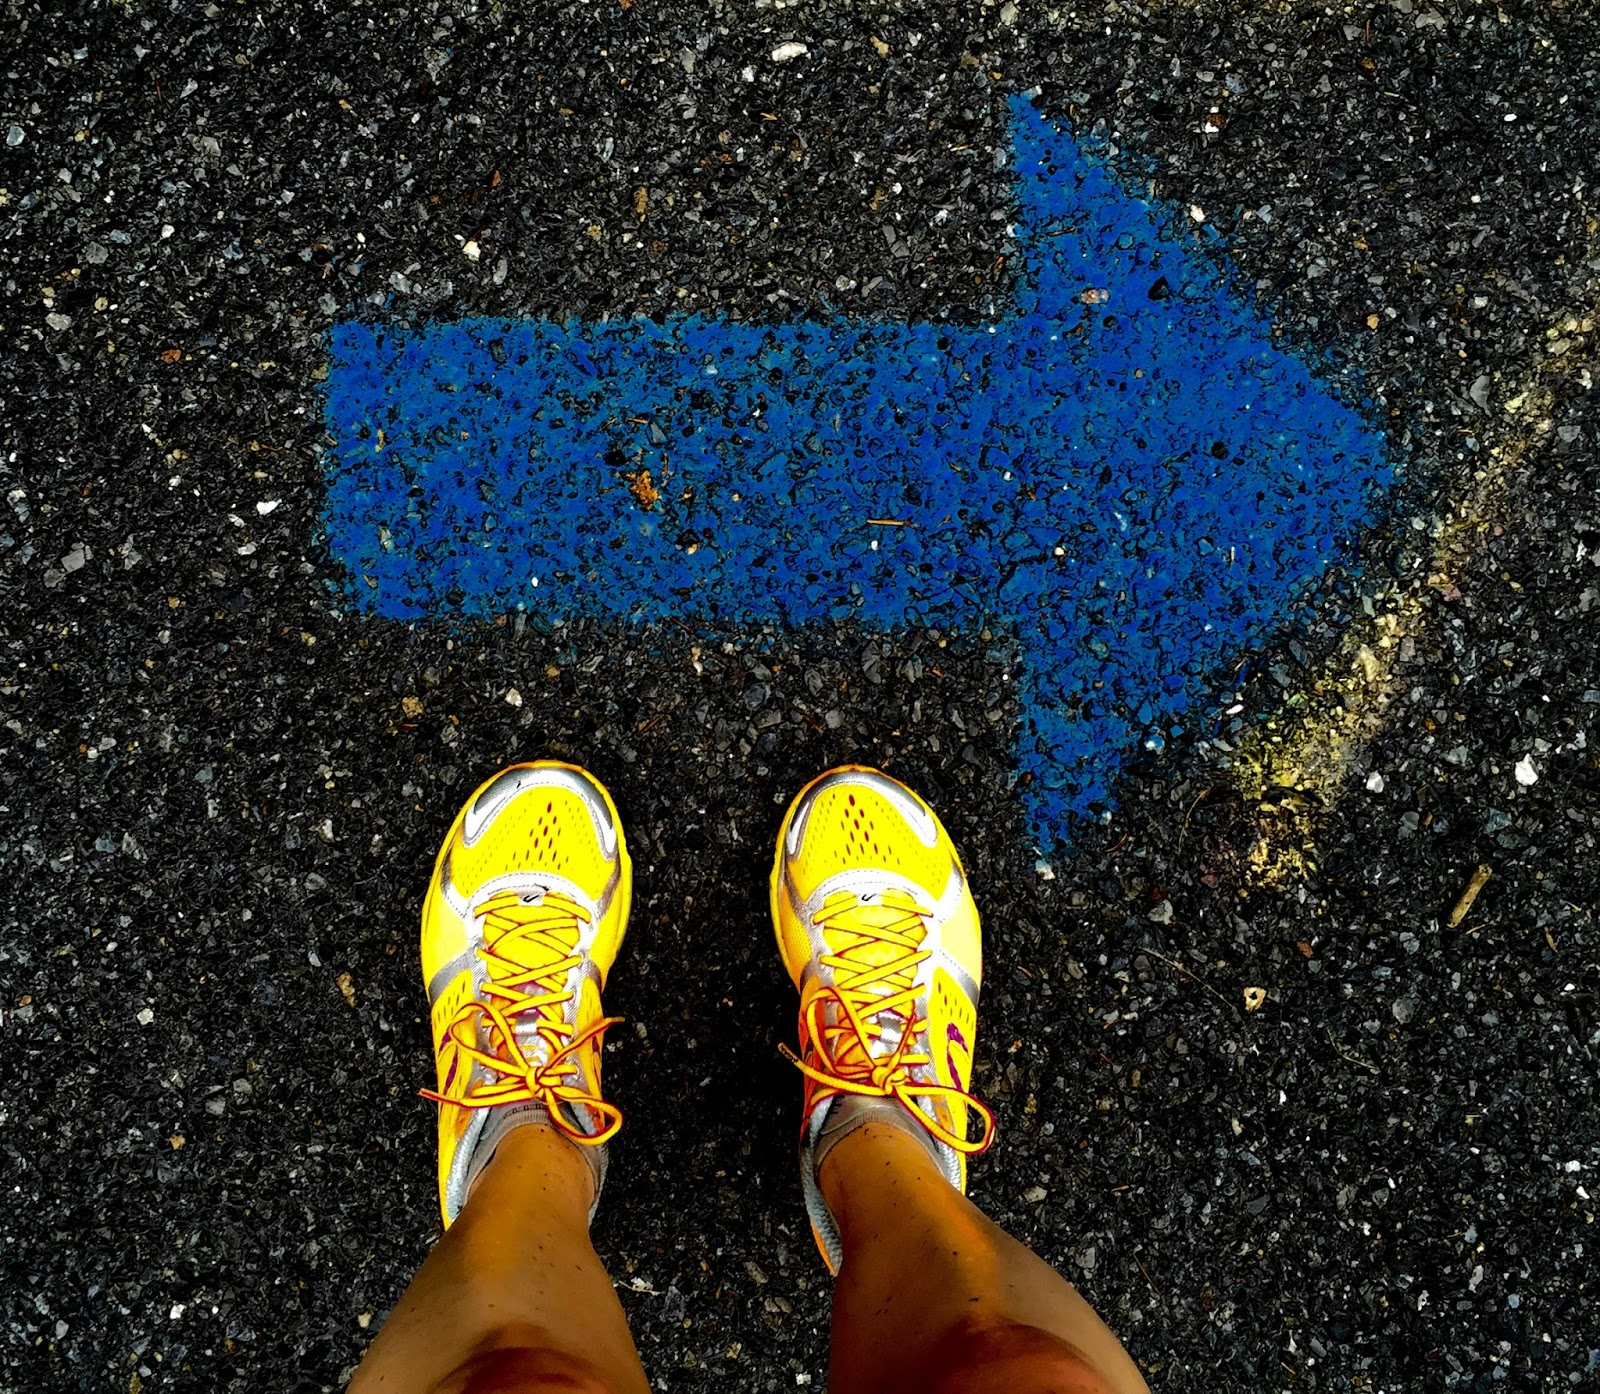 This picture was taken in June of 2015 during my Via Marathon training, the first attempt at a BQ.    Blue arrows mark the flow of the course.    Over time, the vibrance of the arrow faded.  The symbolism of that takes my breath away.  On the other hand, in no time, I ditched those bullshit Newton shoes, vowing to never endorse the brand again.